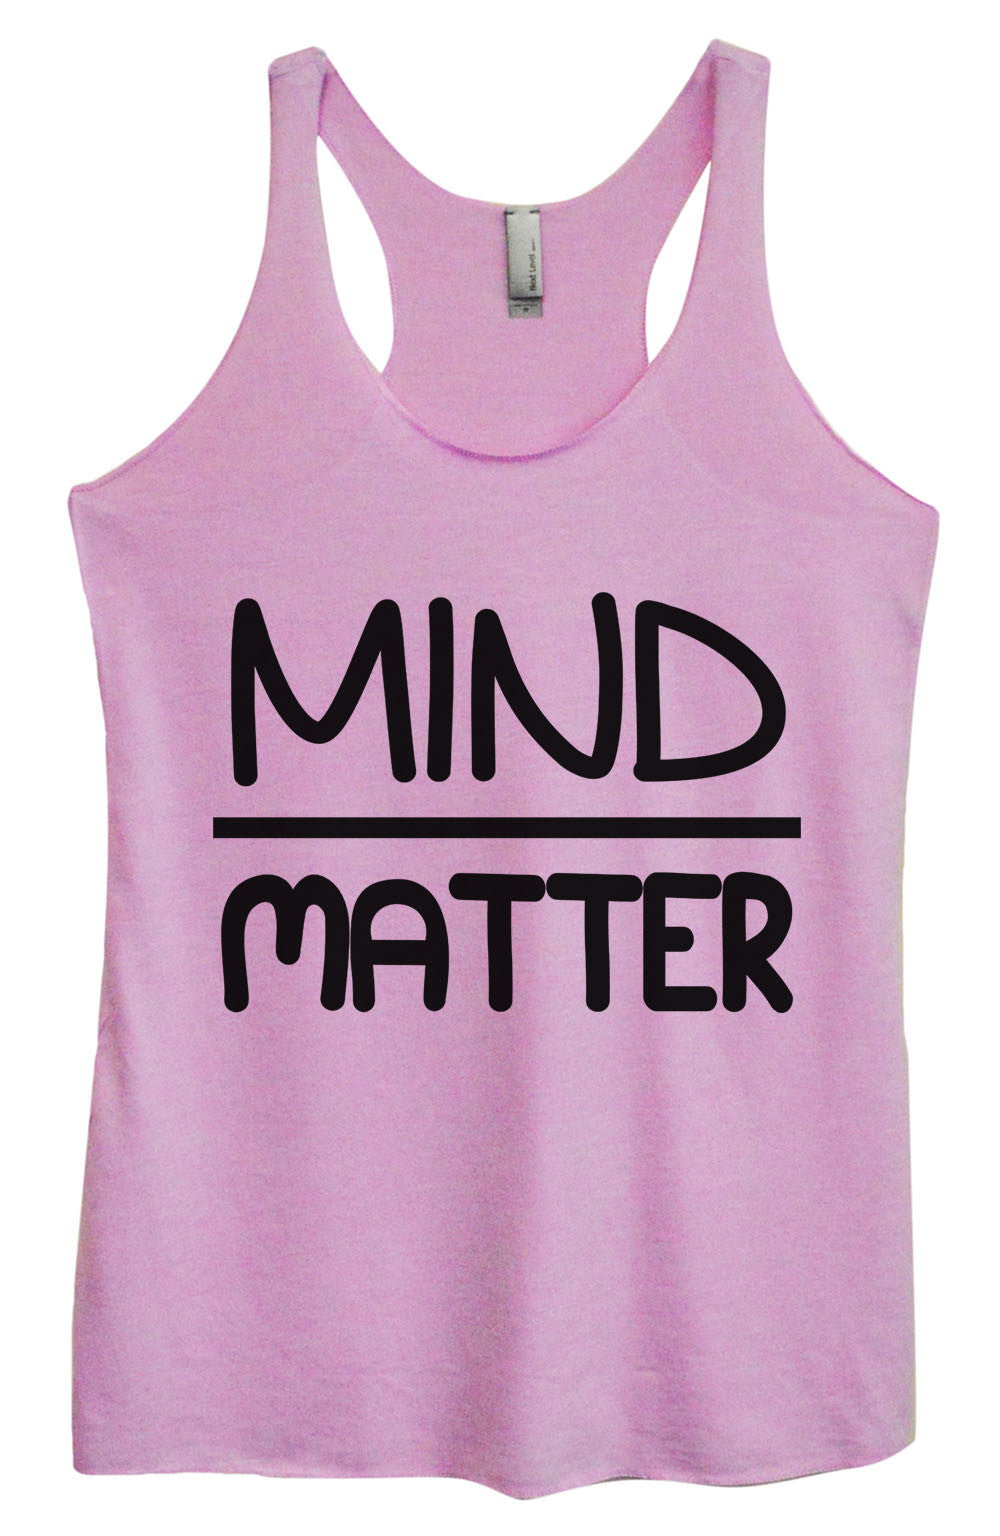 Womens Fashion Triblend Tank Top - Mind Matter - Tri-655 - Funny Shirts Tank Tops Burnouts and Triblends  - 1